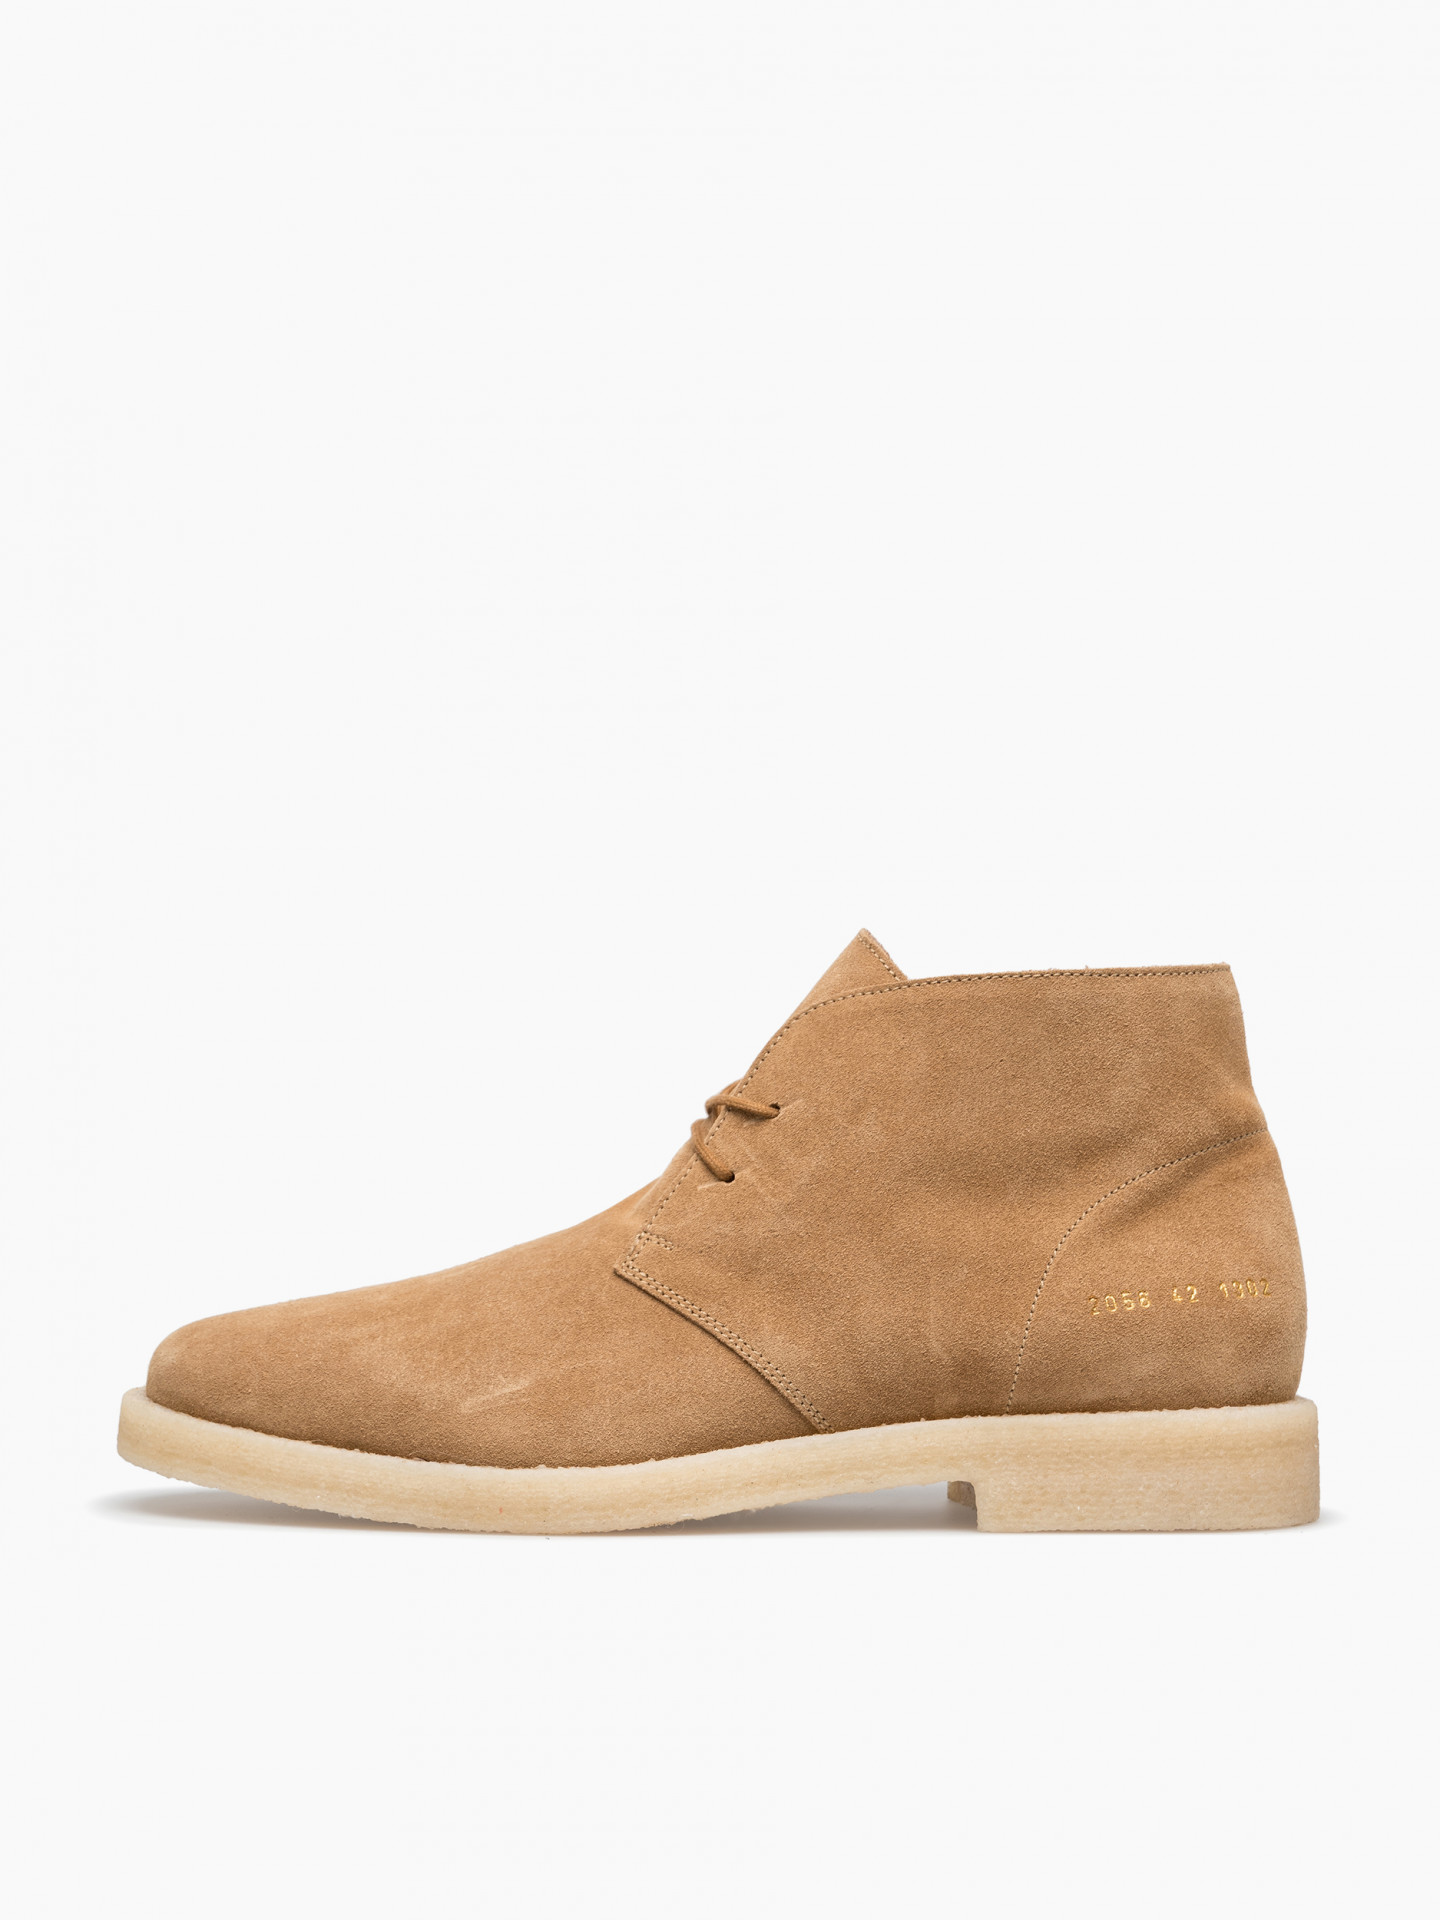 Мужские ботинки Common Projects Chukka in Suede Crepe Sole